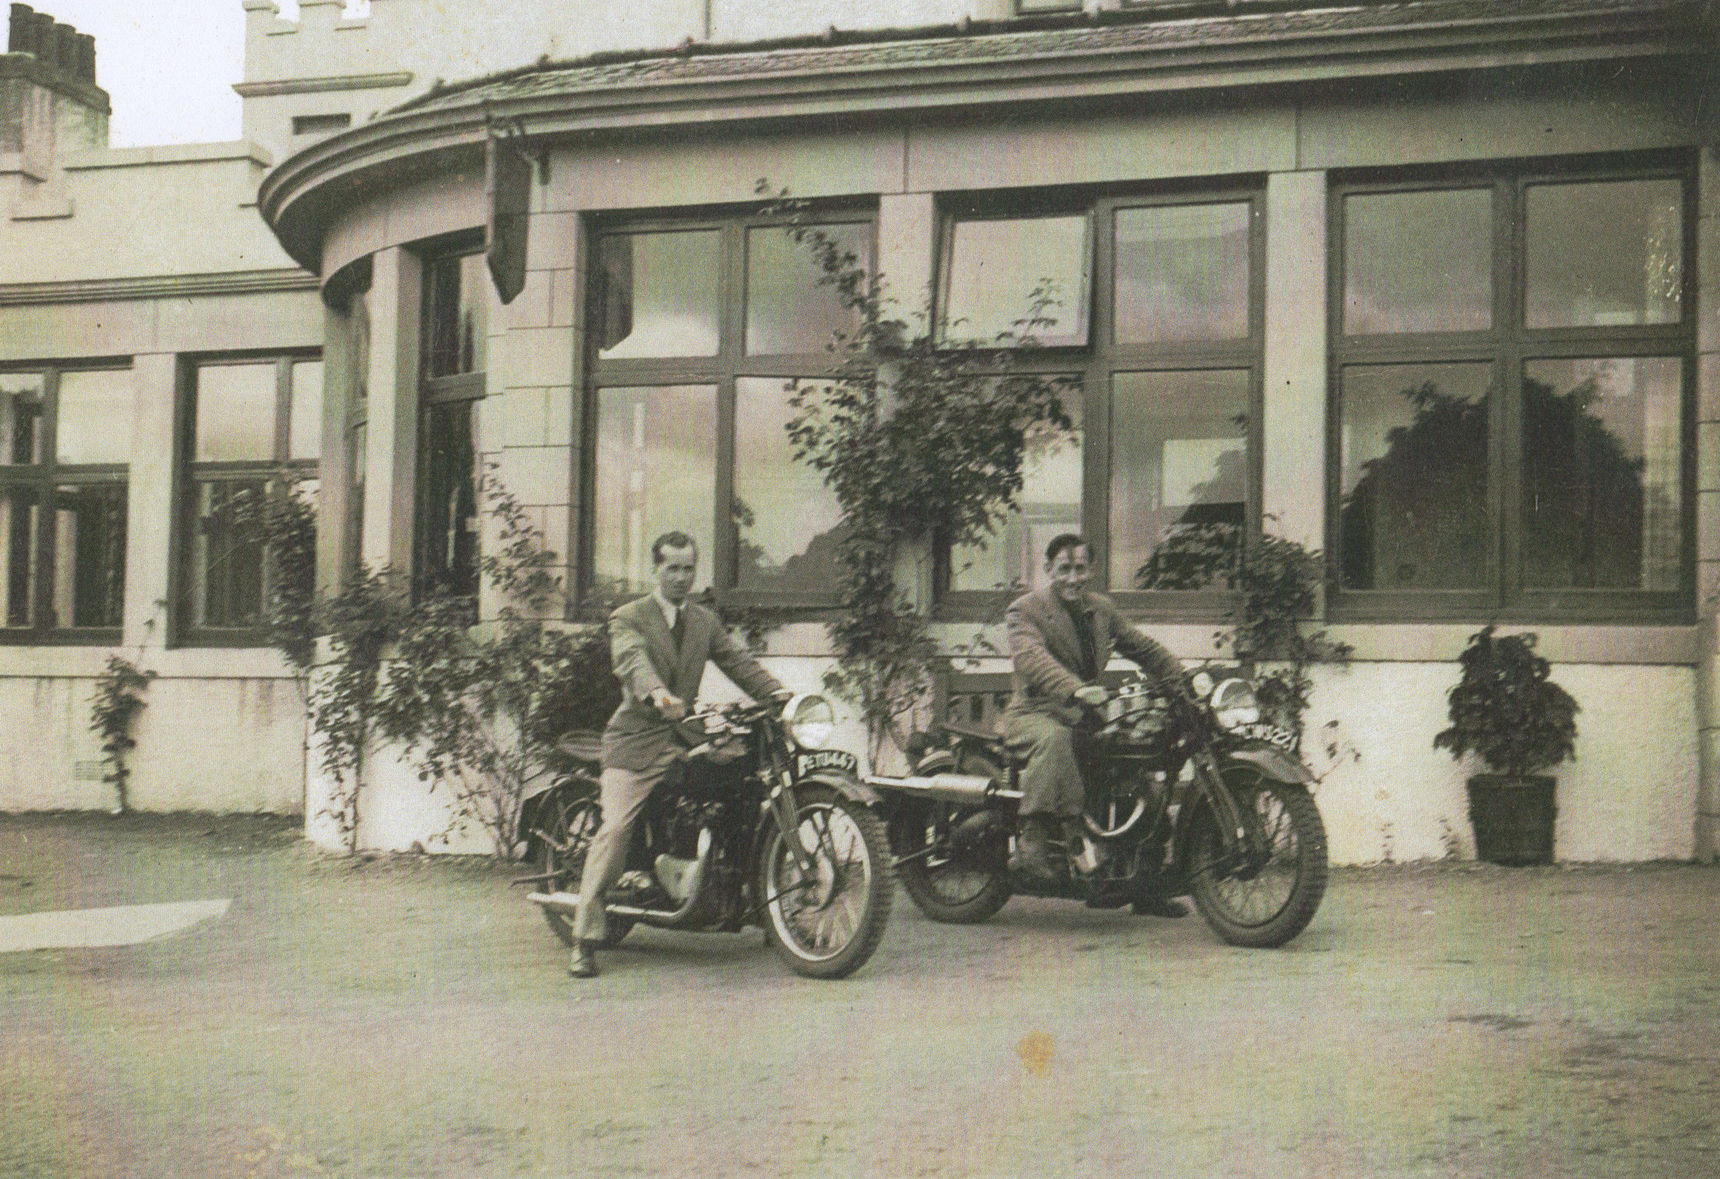 My Dad on the right with his friend on their Motor Bikes.